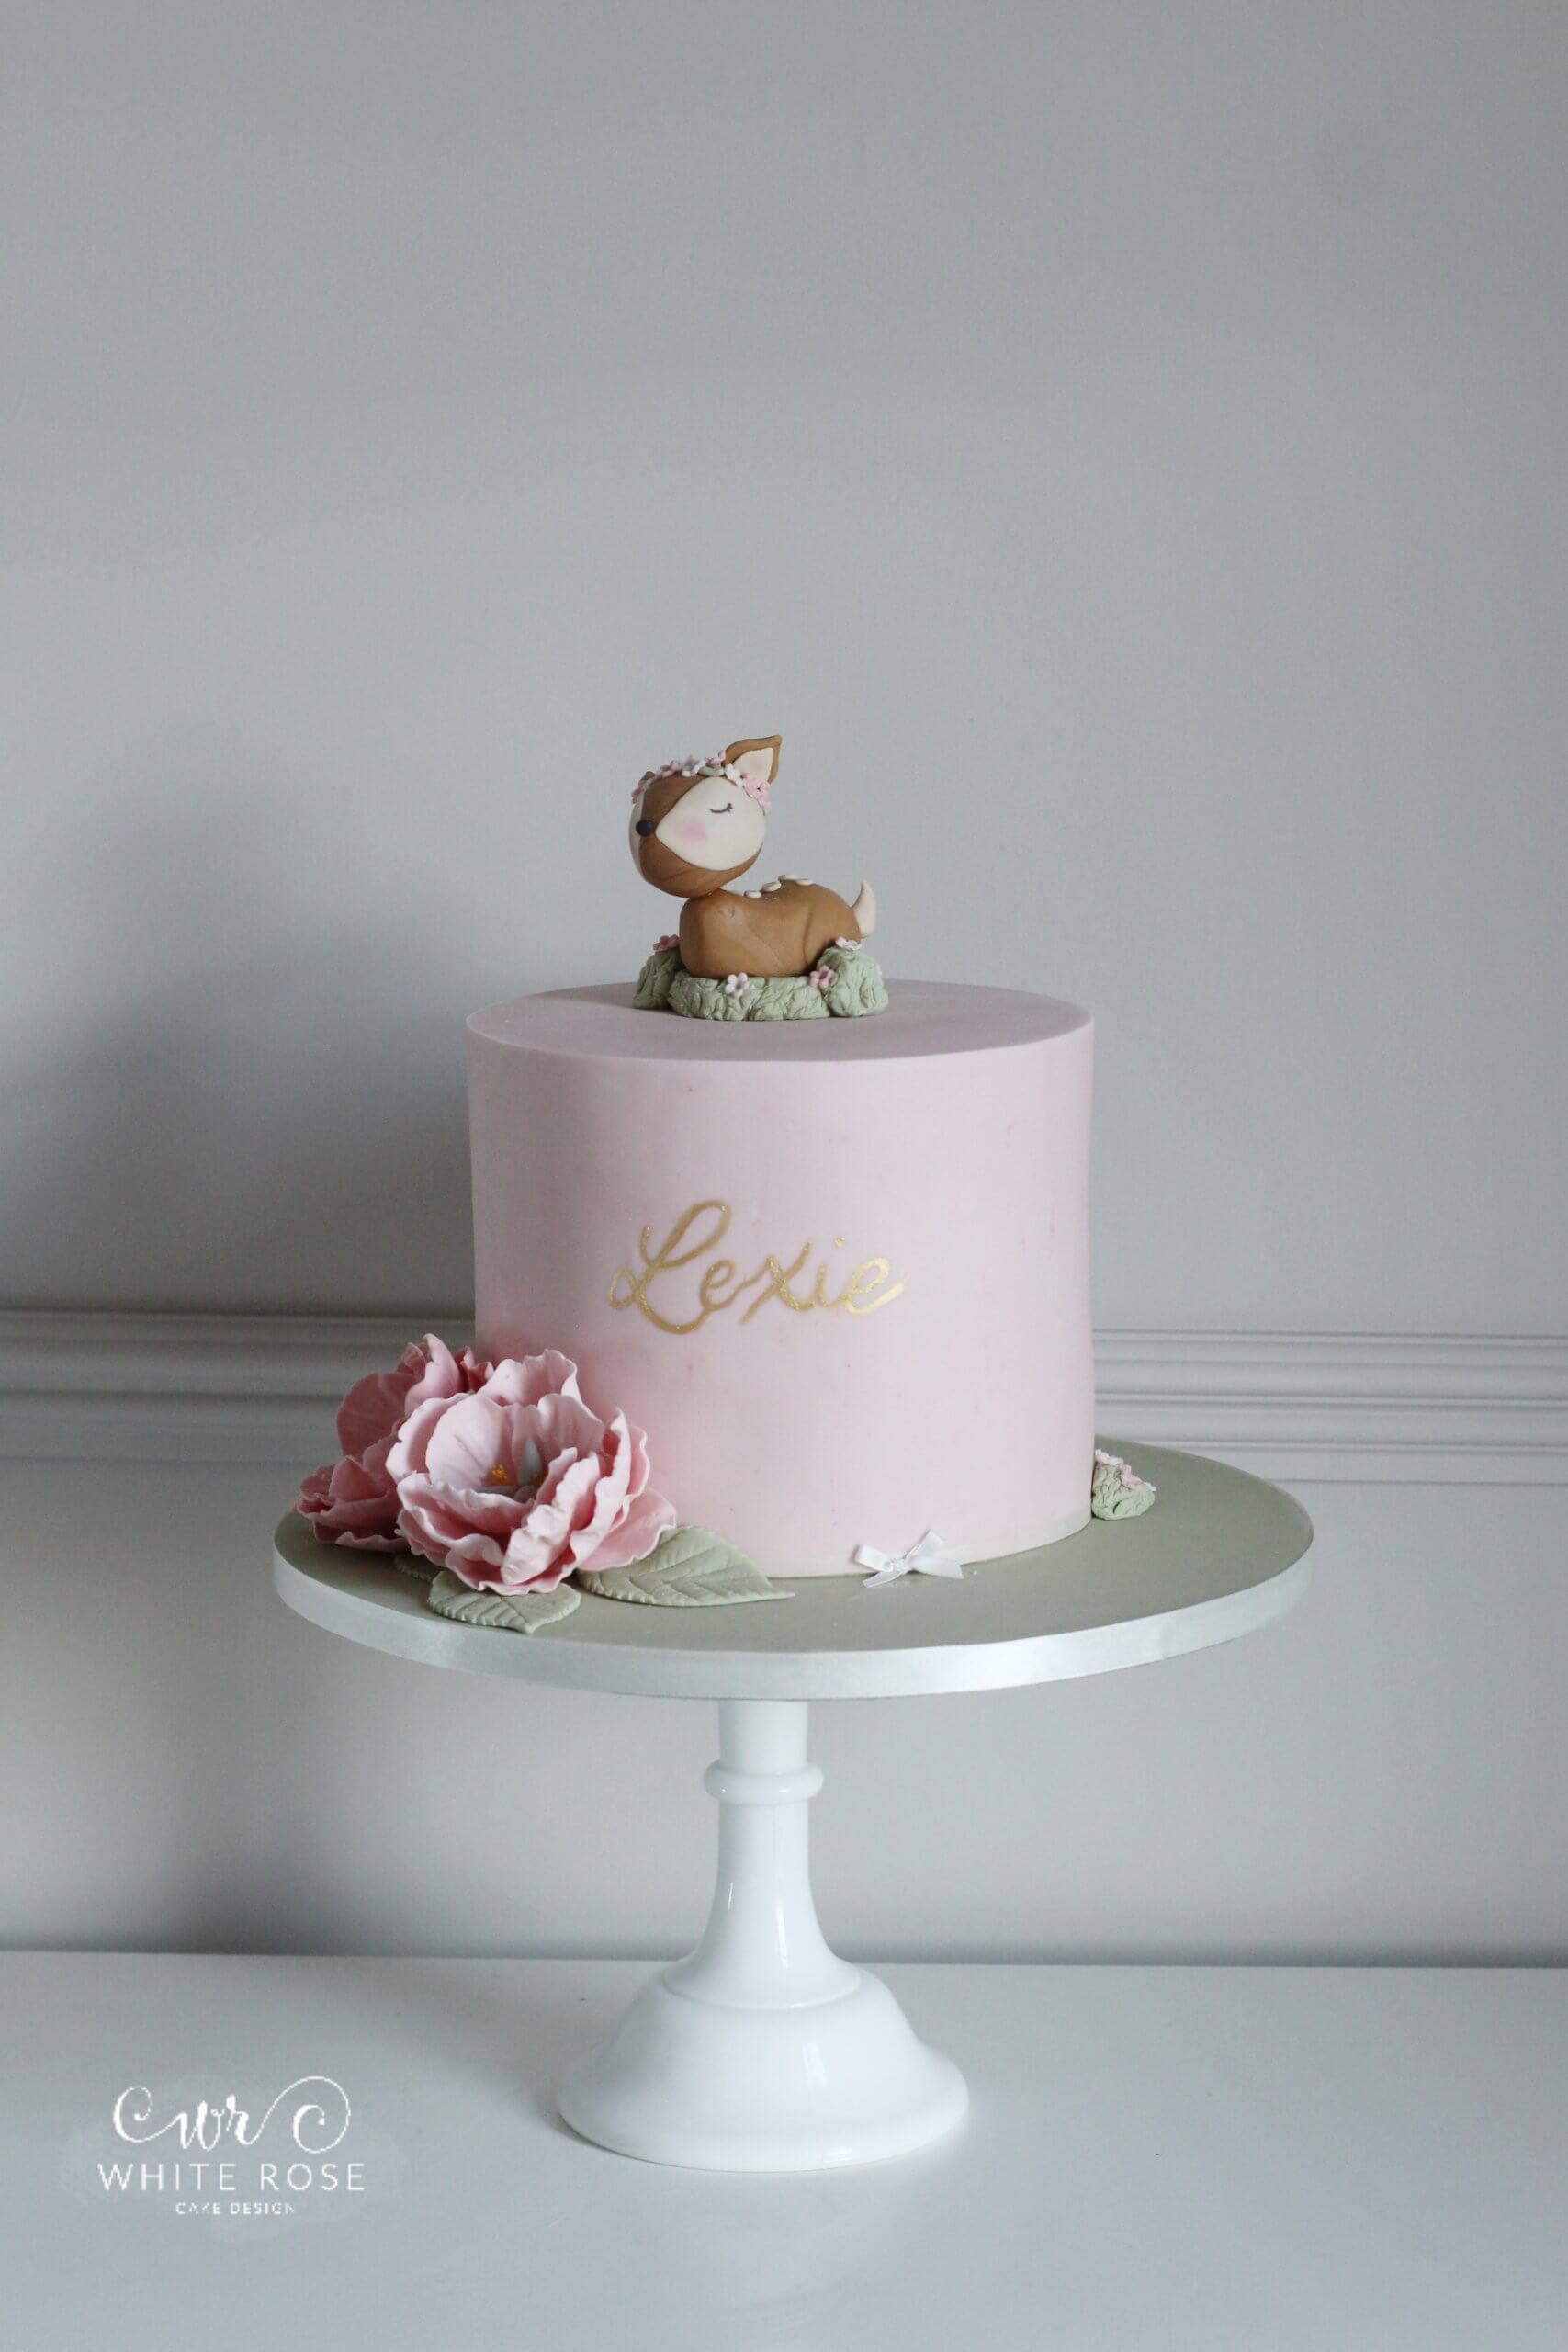 Woodland Deer First 1st Birthday Cake by White Rose Cake Design Bespoke Birthday Cakes in Huddersfield Holmfirth (1)